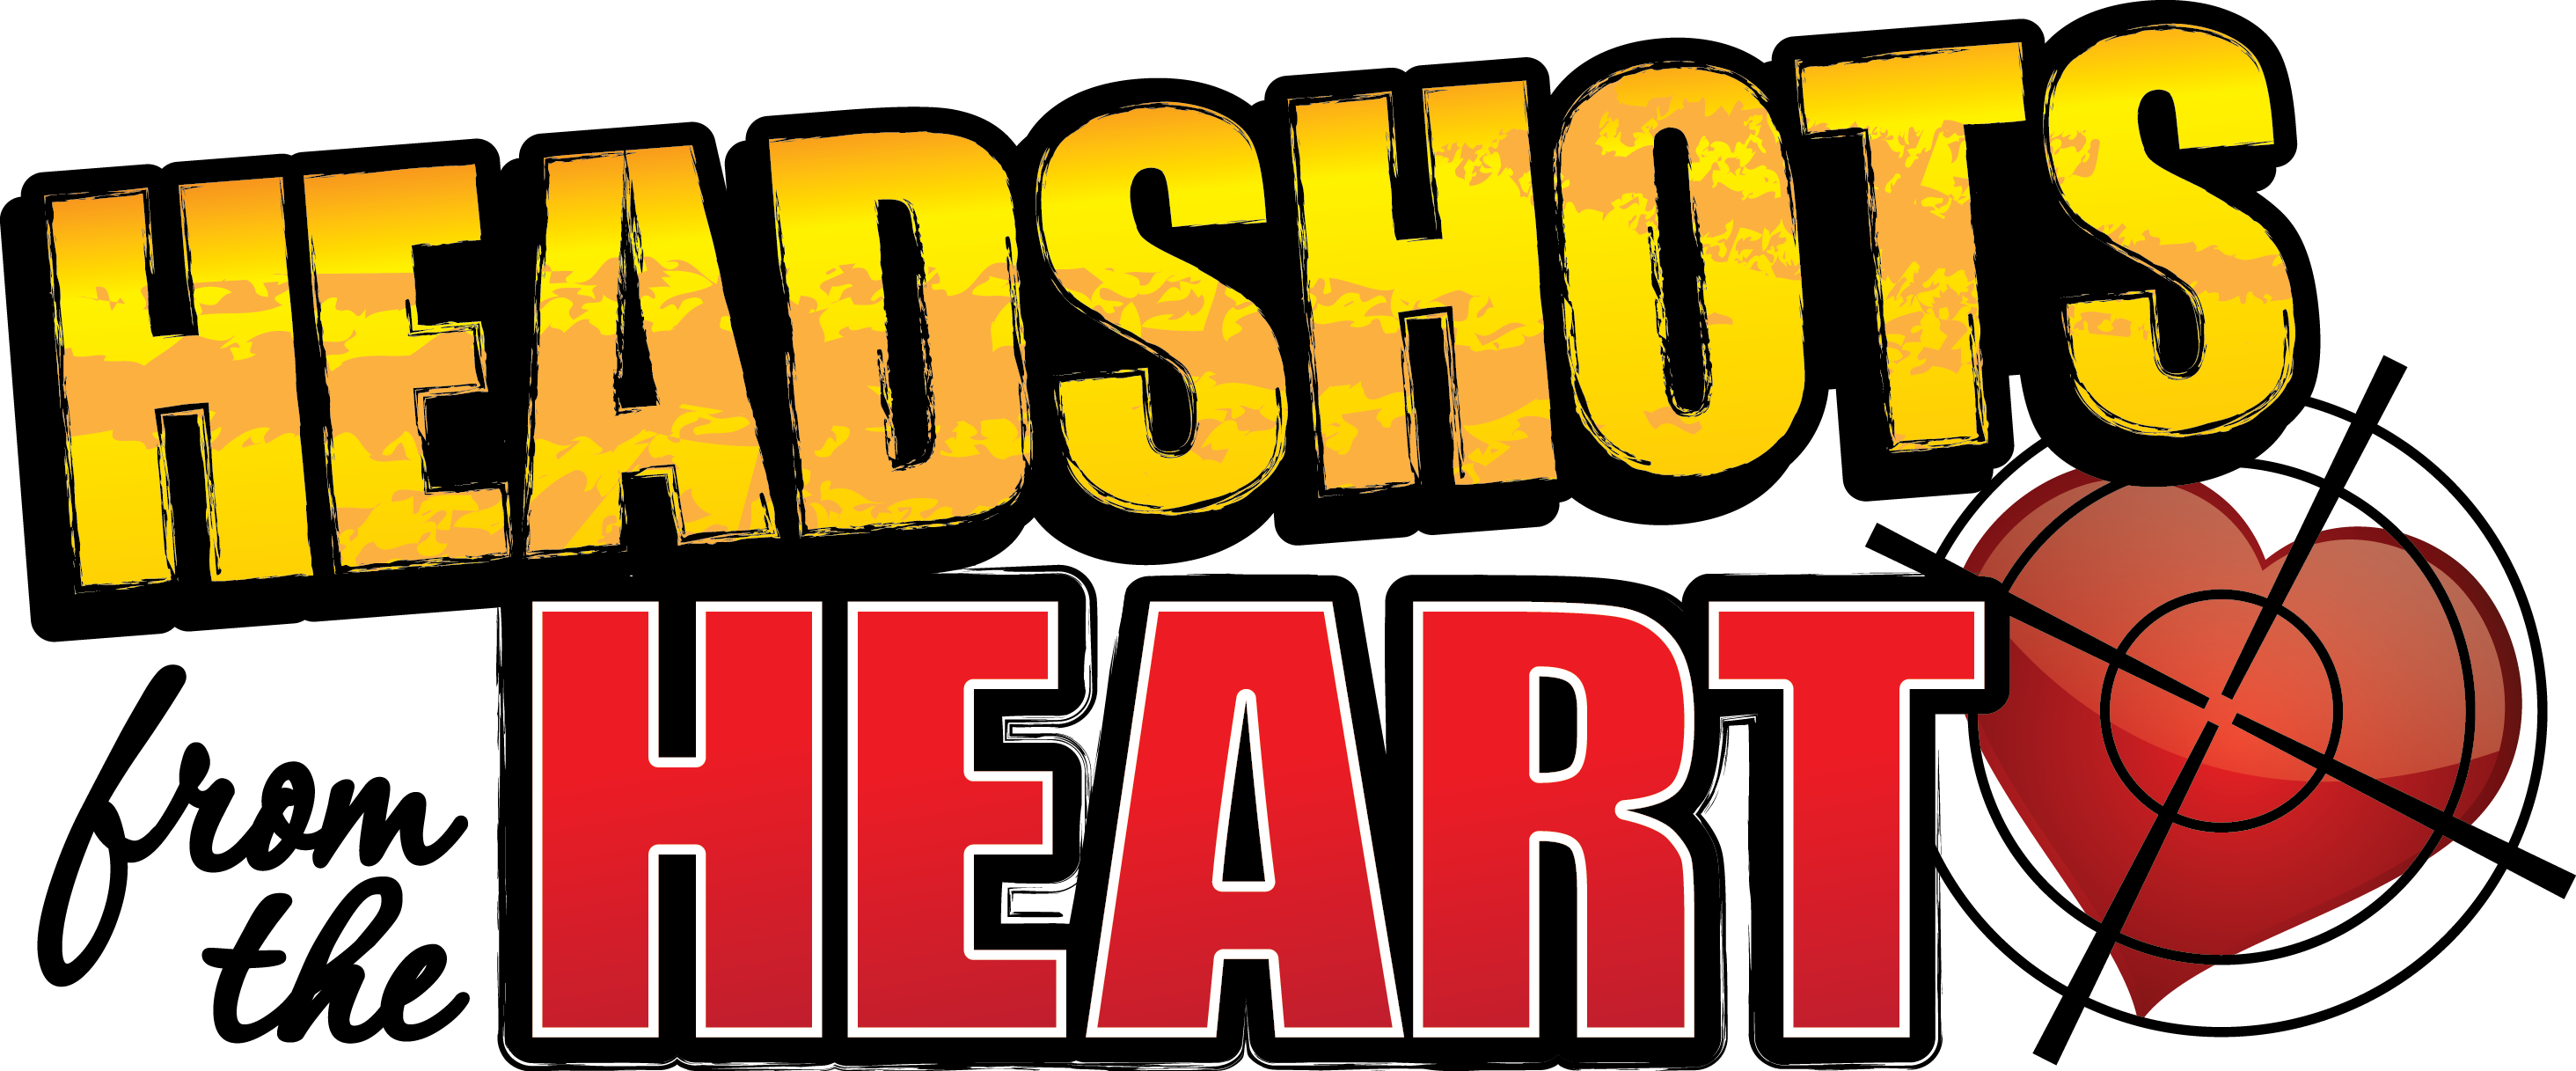 Headshtos from the Heart, online charity videogame marathon